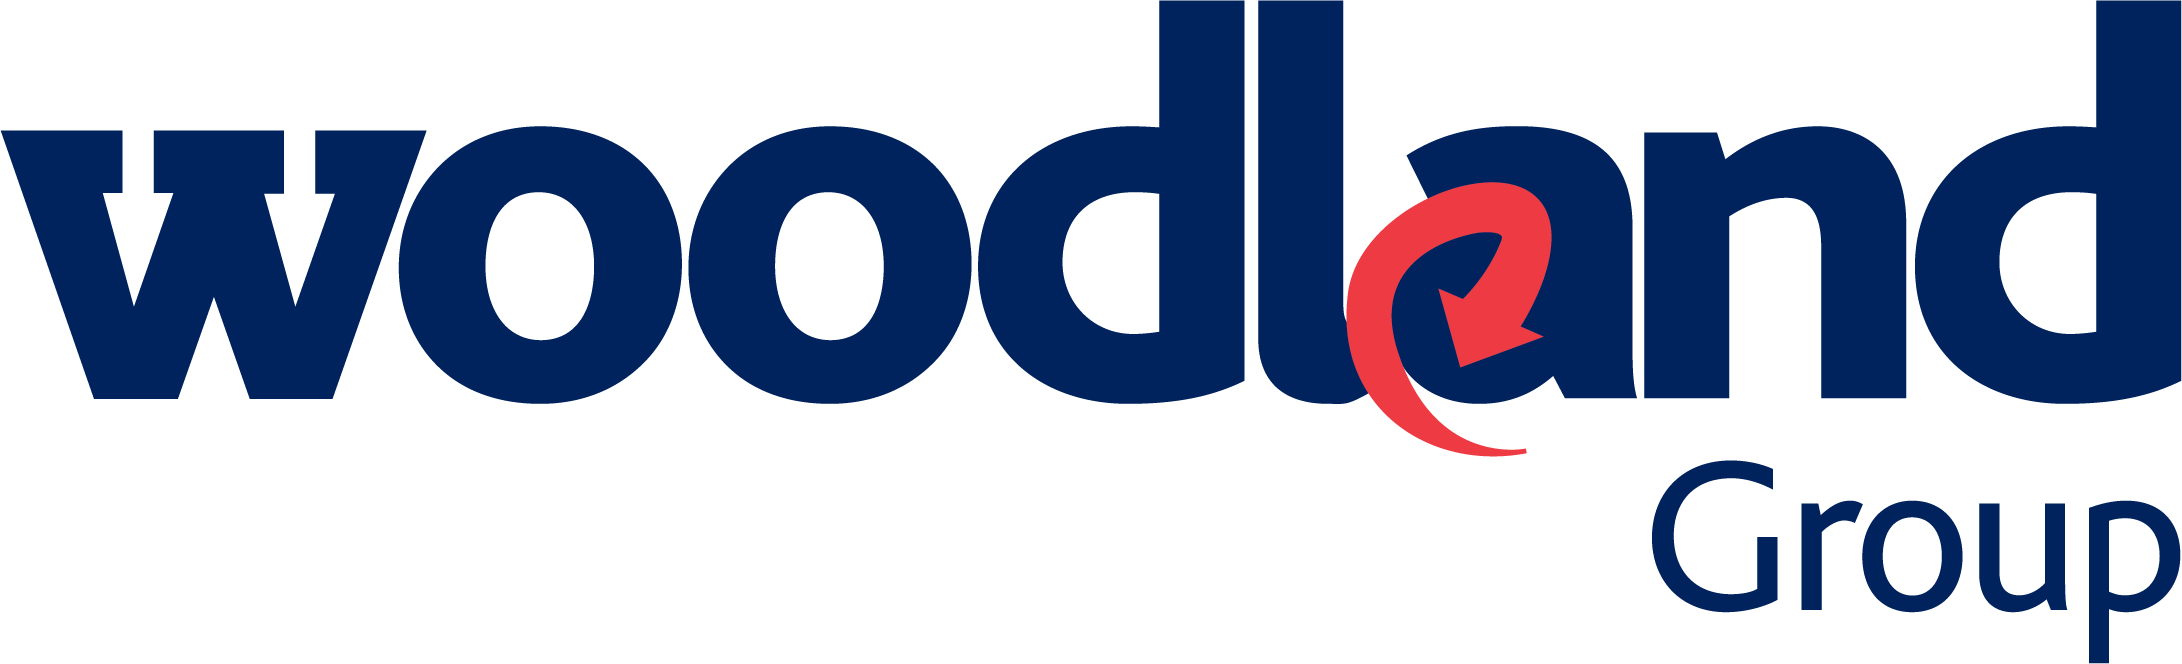 Woodland Group | Global transportation and freight forwarding